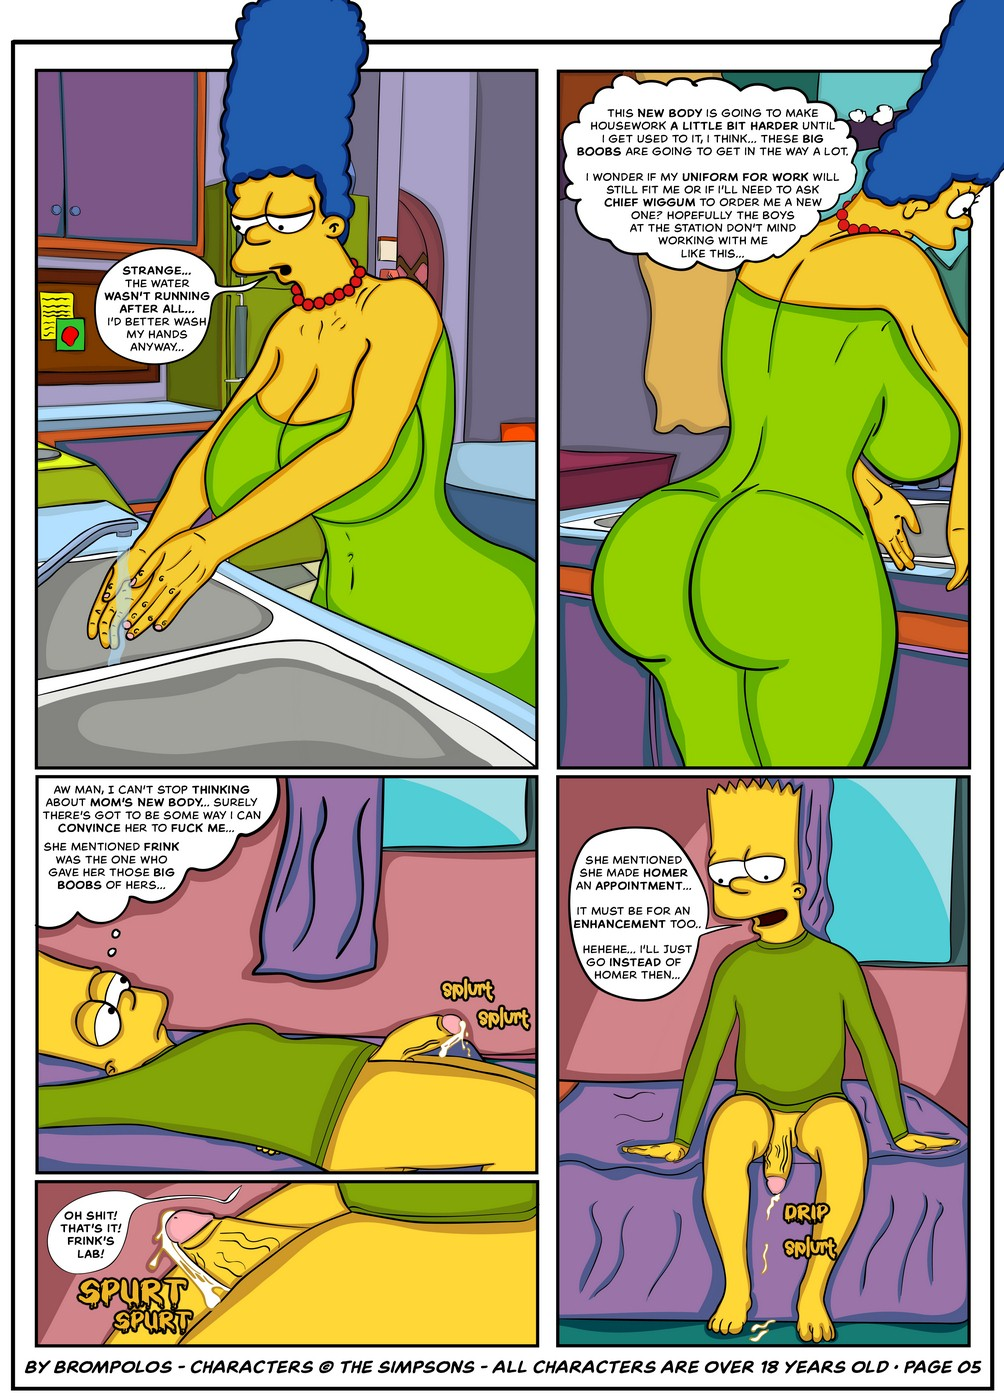 008 - The Simpsons are the sexenteins.